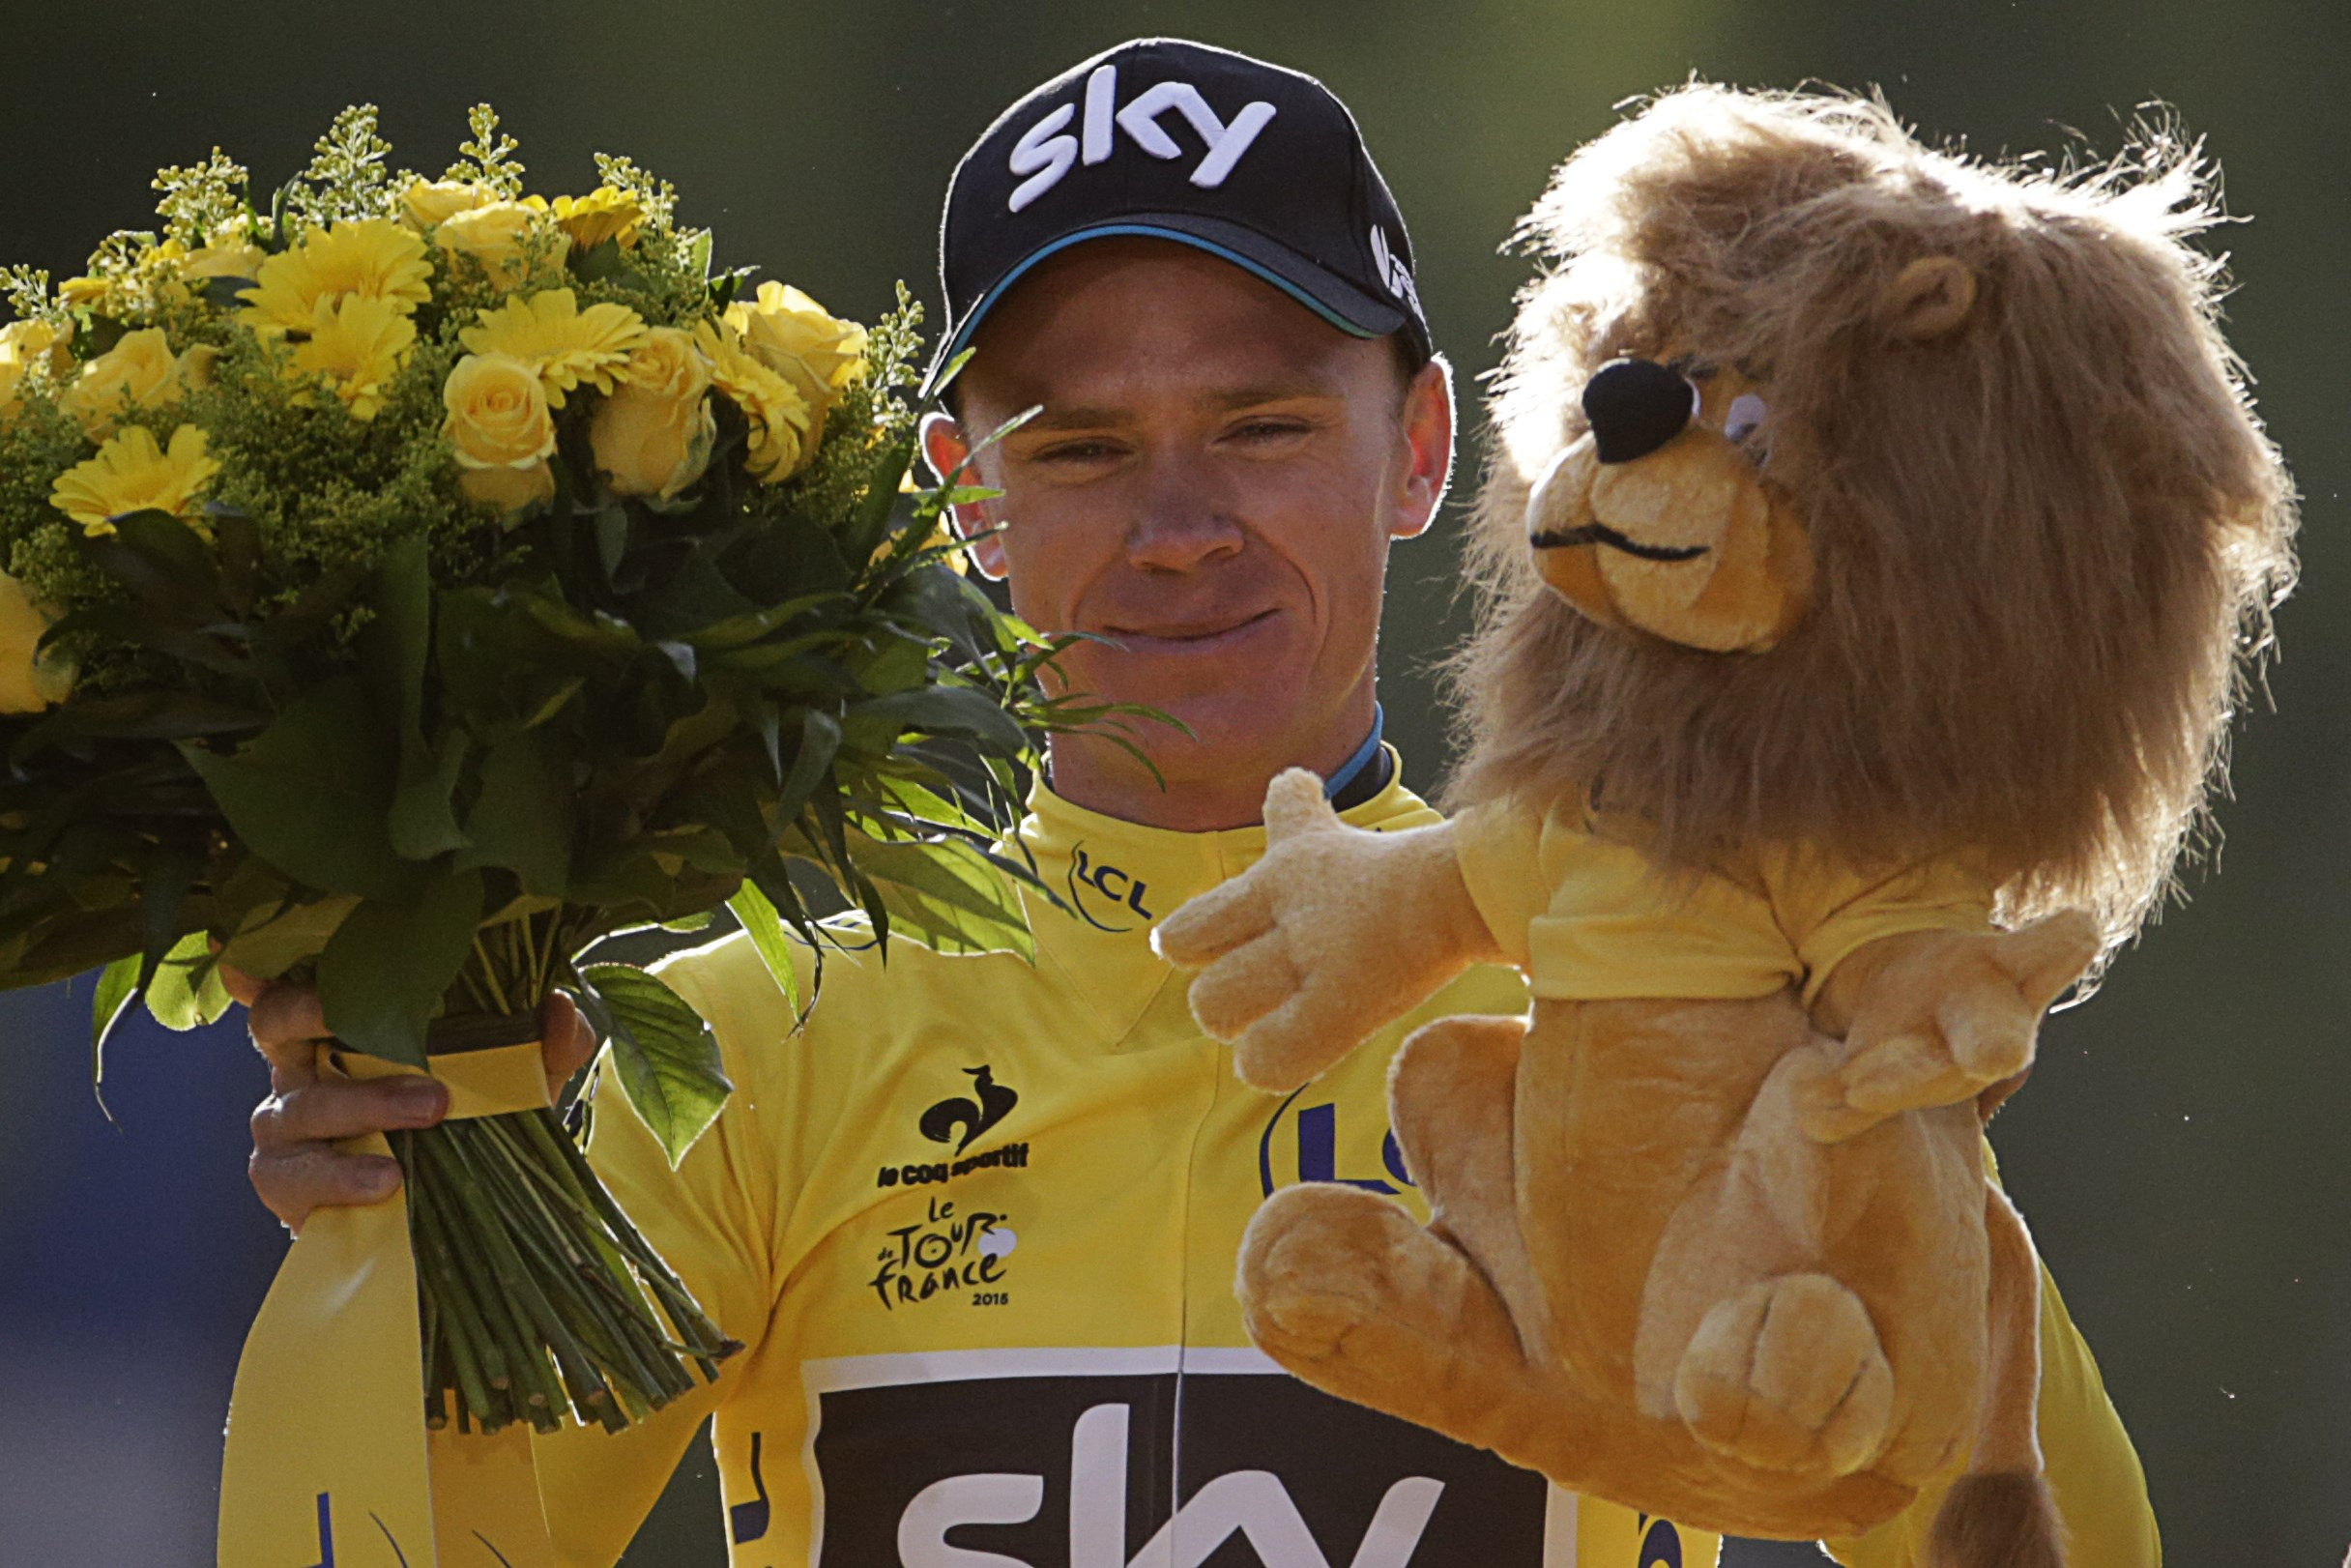 Chris Froome - Tour De France